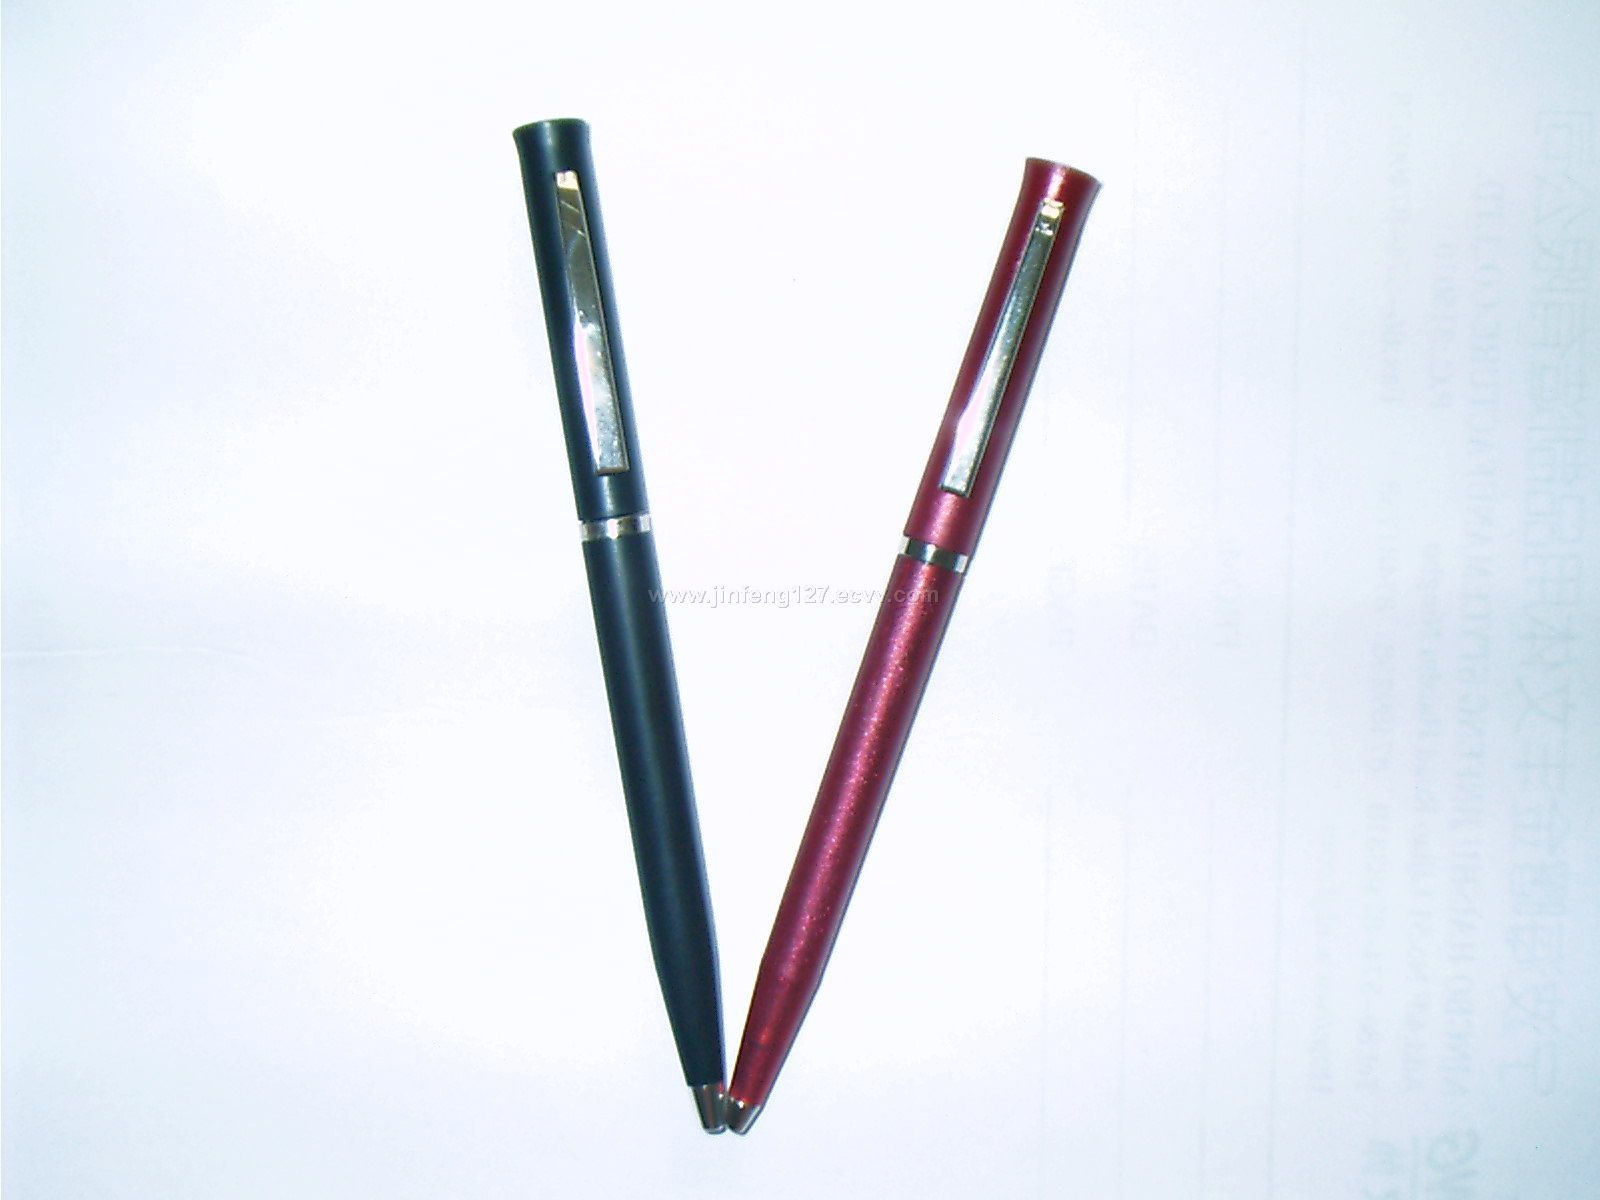 twist ball point pen